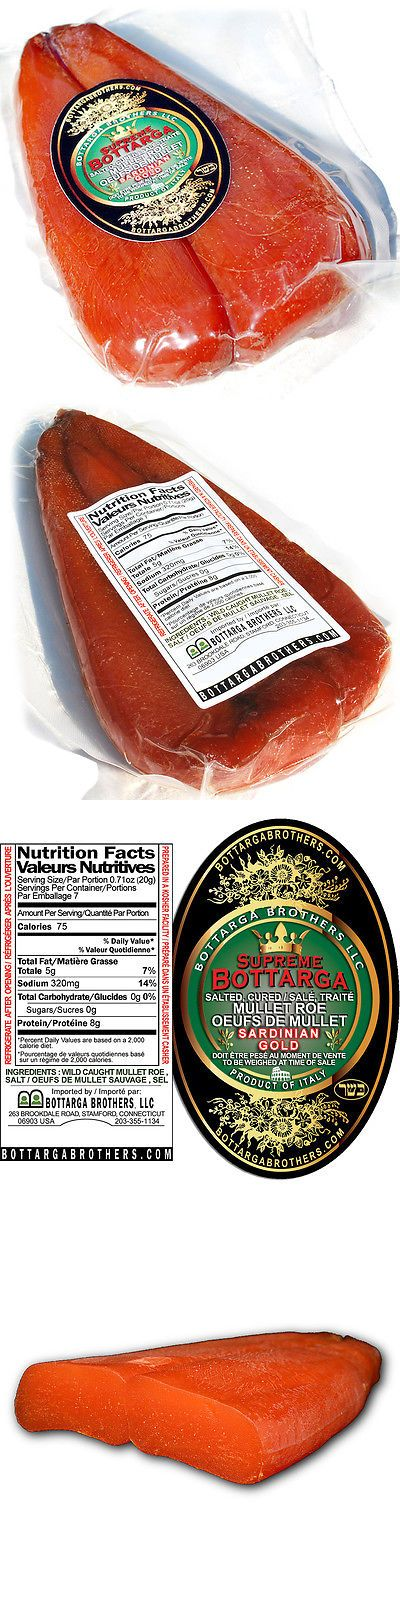 Meat Poultry and Seafood 14312: Supreme Bottarga™ - Sardinian Gold - Italian Cured Mullet Fish Roe -> BUY IT NOW ONLY: $41.25 on eBay!